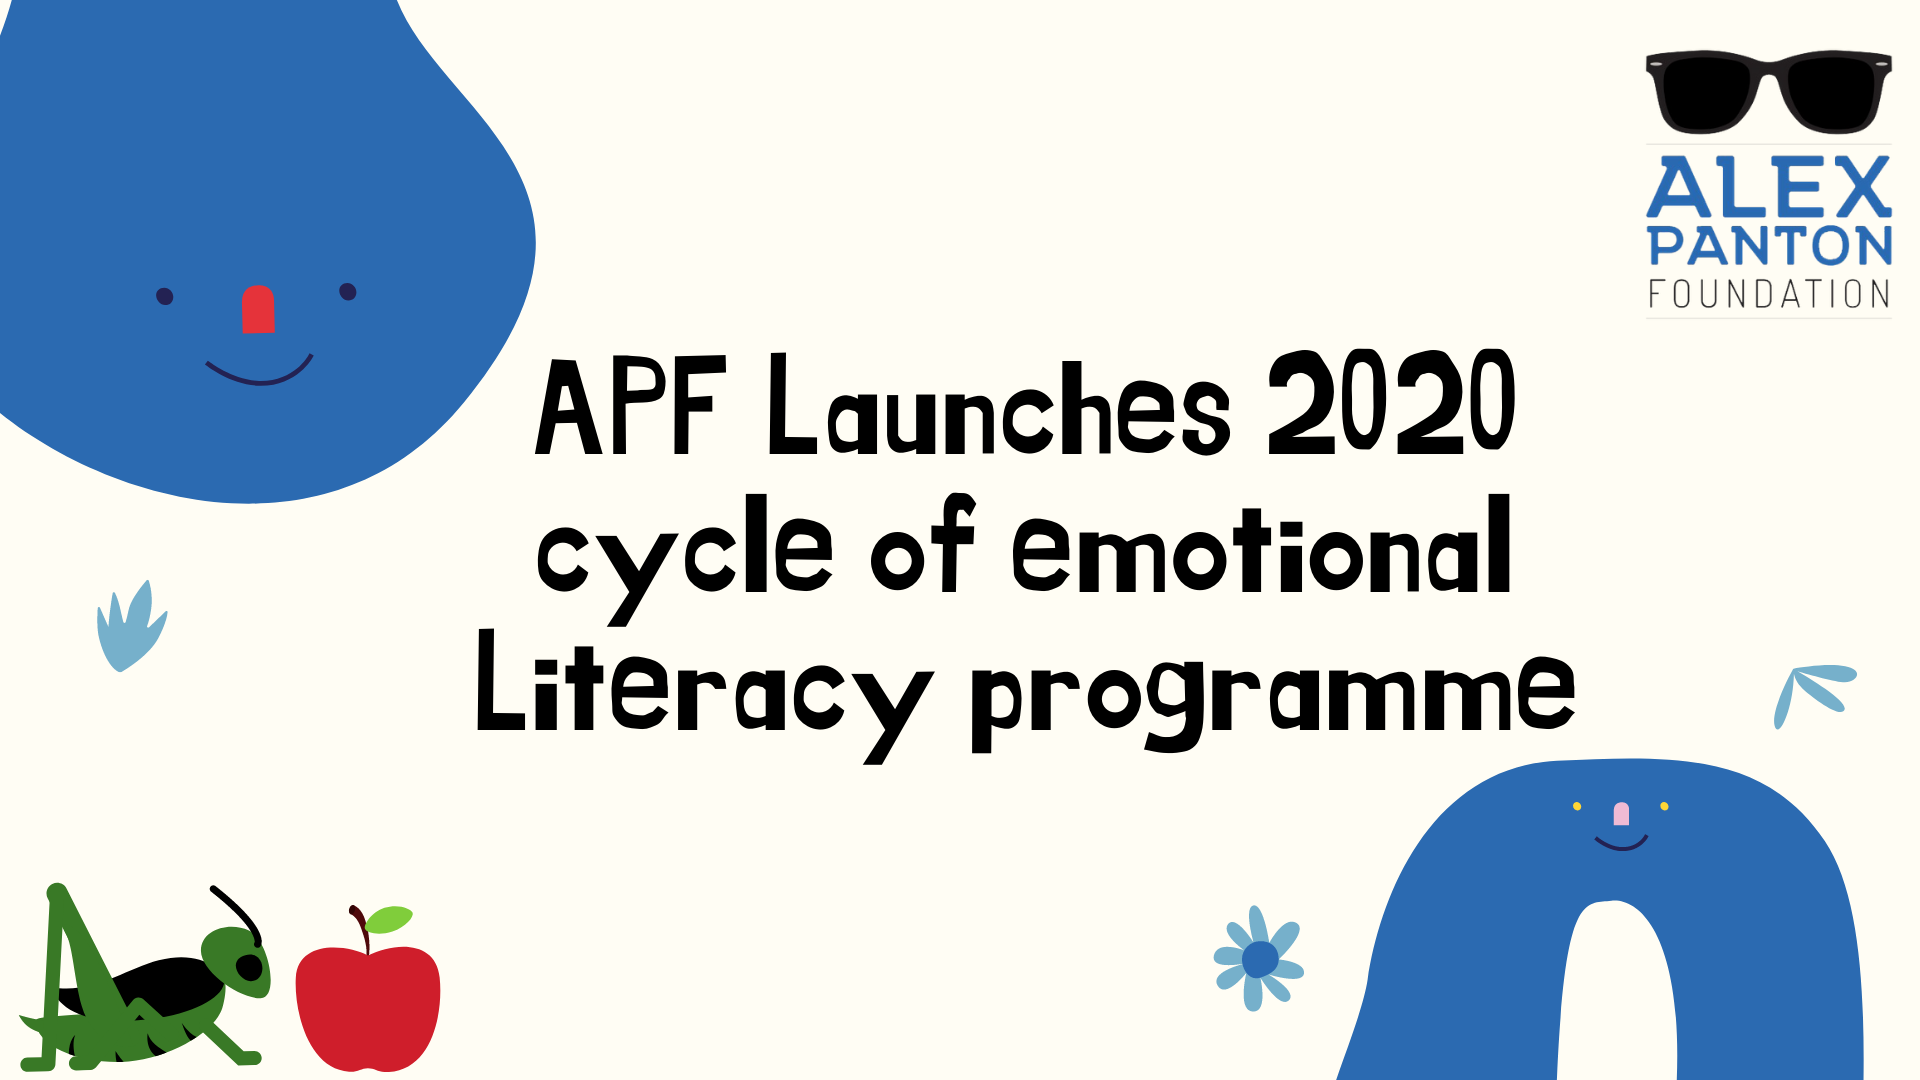 APF Launches 2020 Cycle of Emotional Literacy Programme